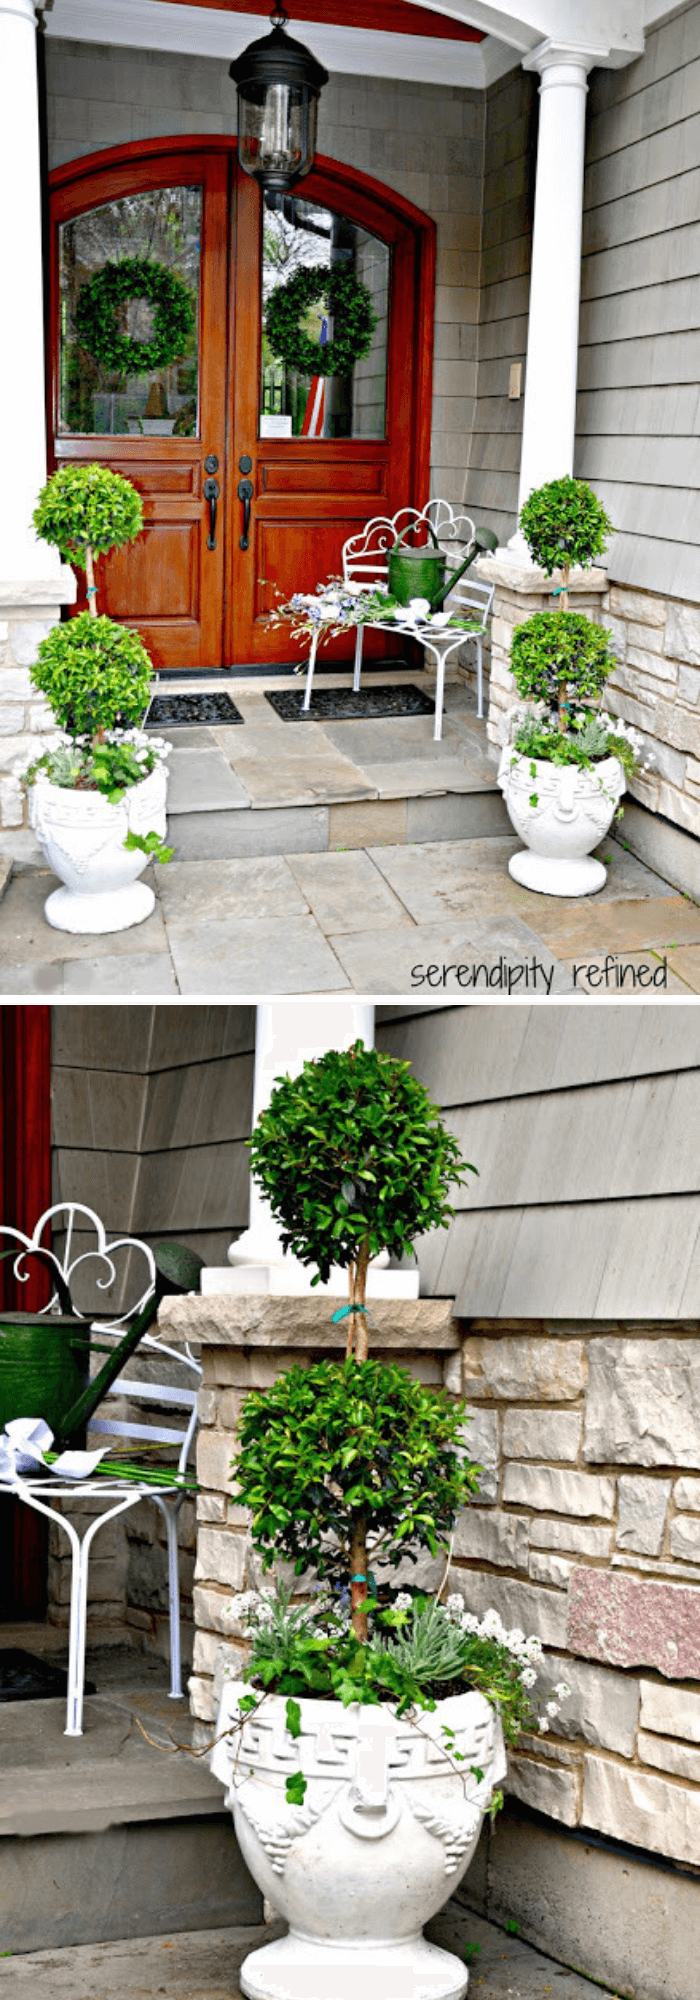 Summer Urns and Container Gardens with Topiary trees